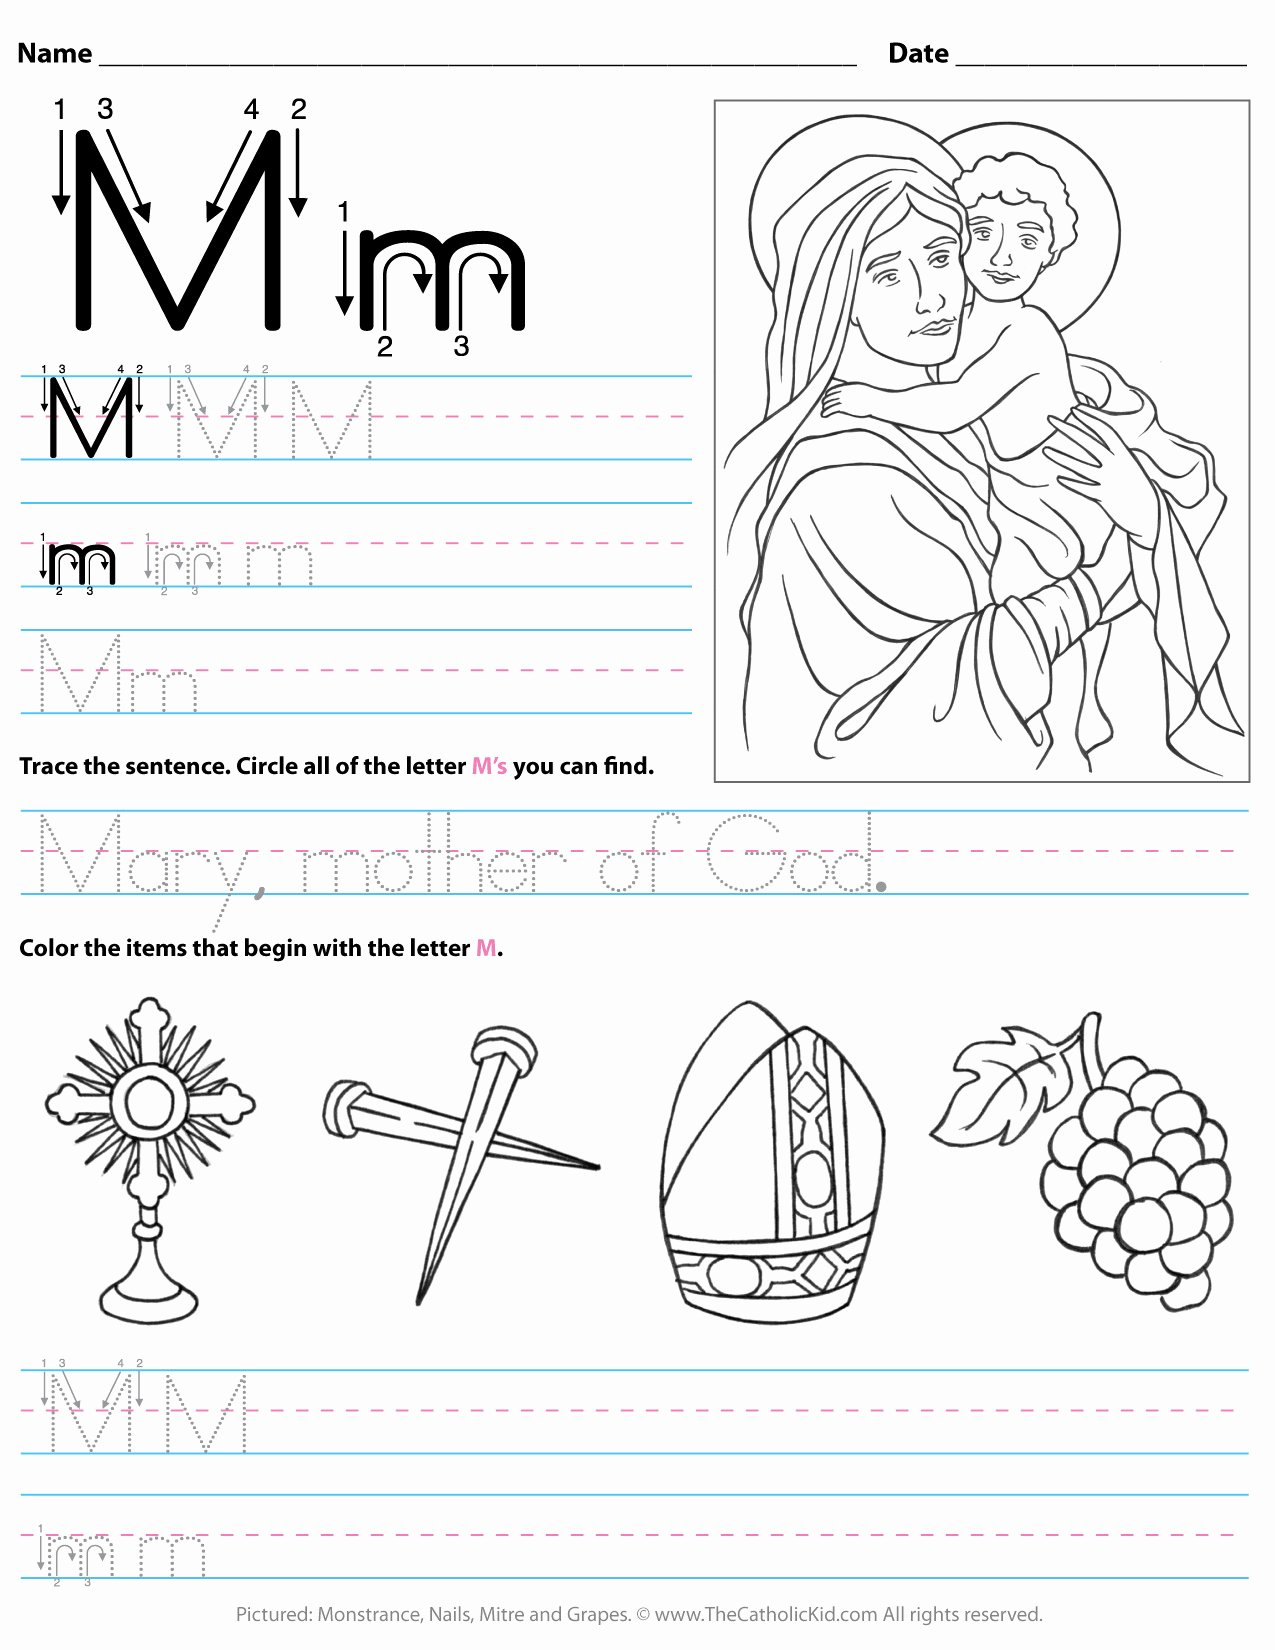 Letter M Worksheets for Preschoolers Beautiful Catholic Alphabet Letter M Worksheet Preschool Kindergarten